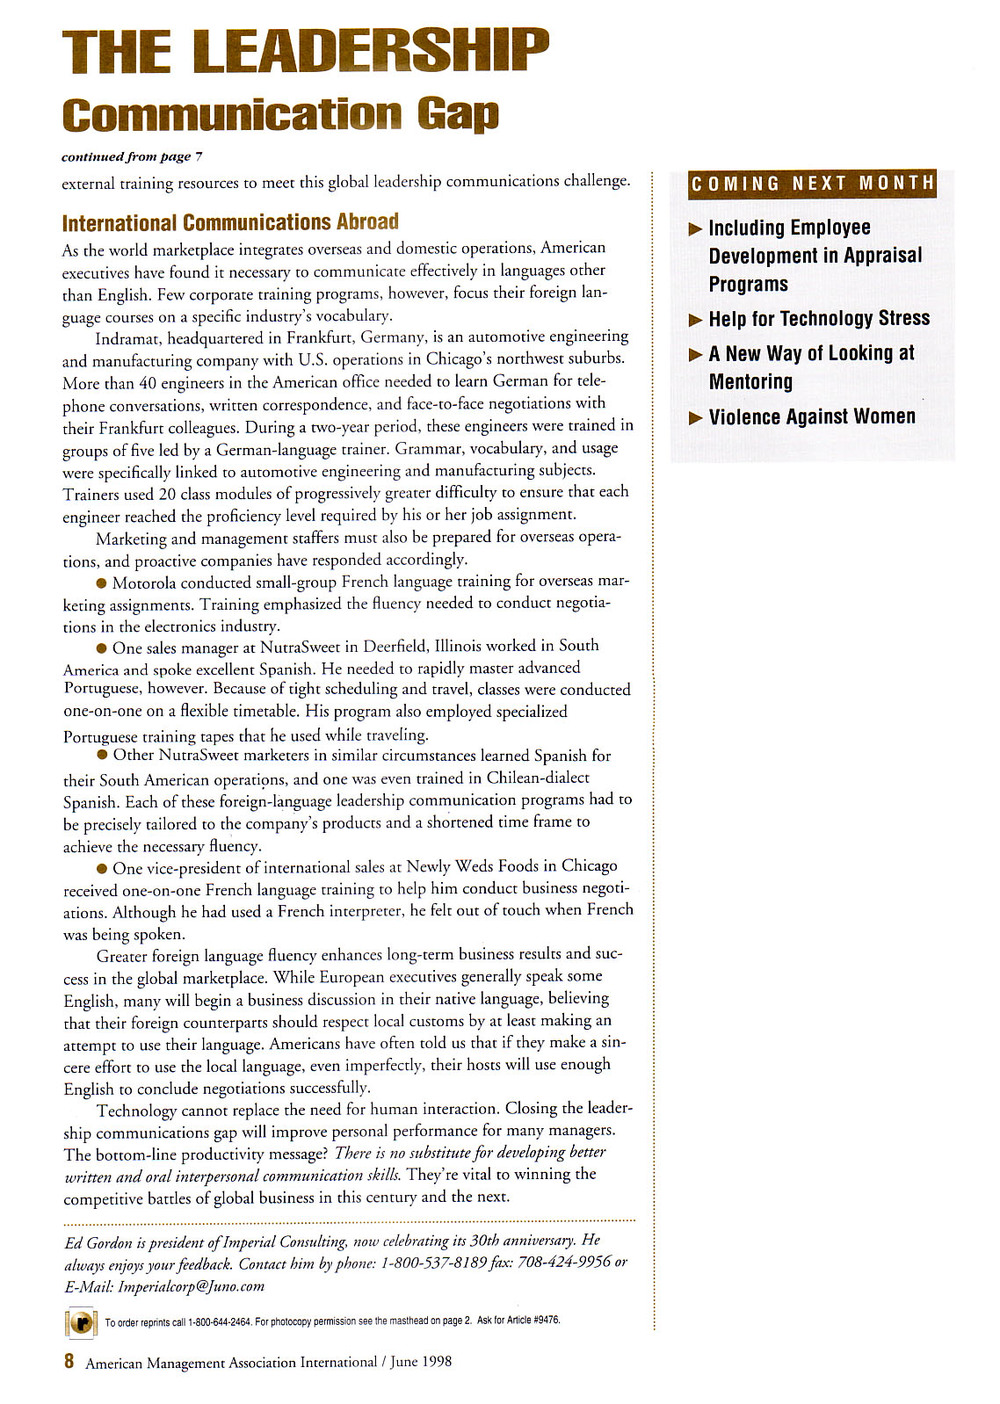 American Management Association International-June 1998-The Leadership Page 2.jpg